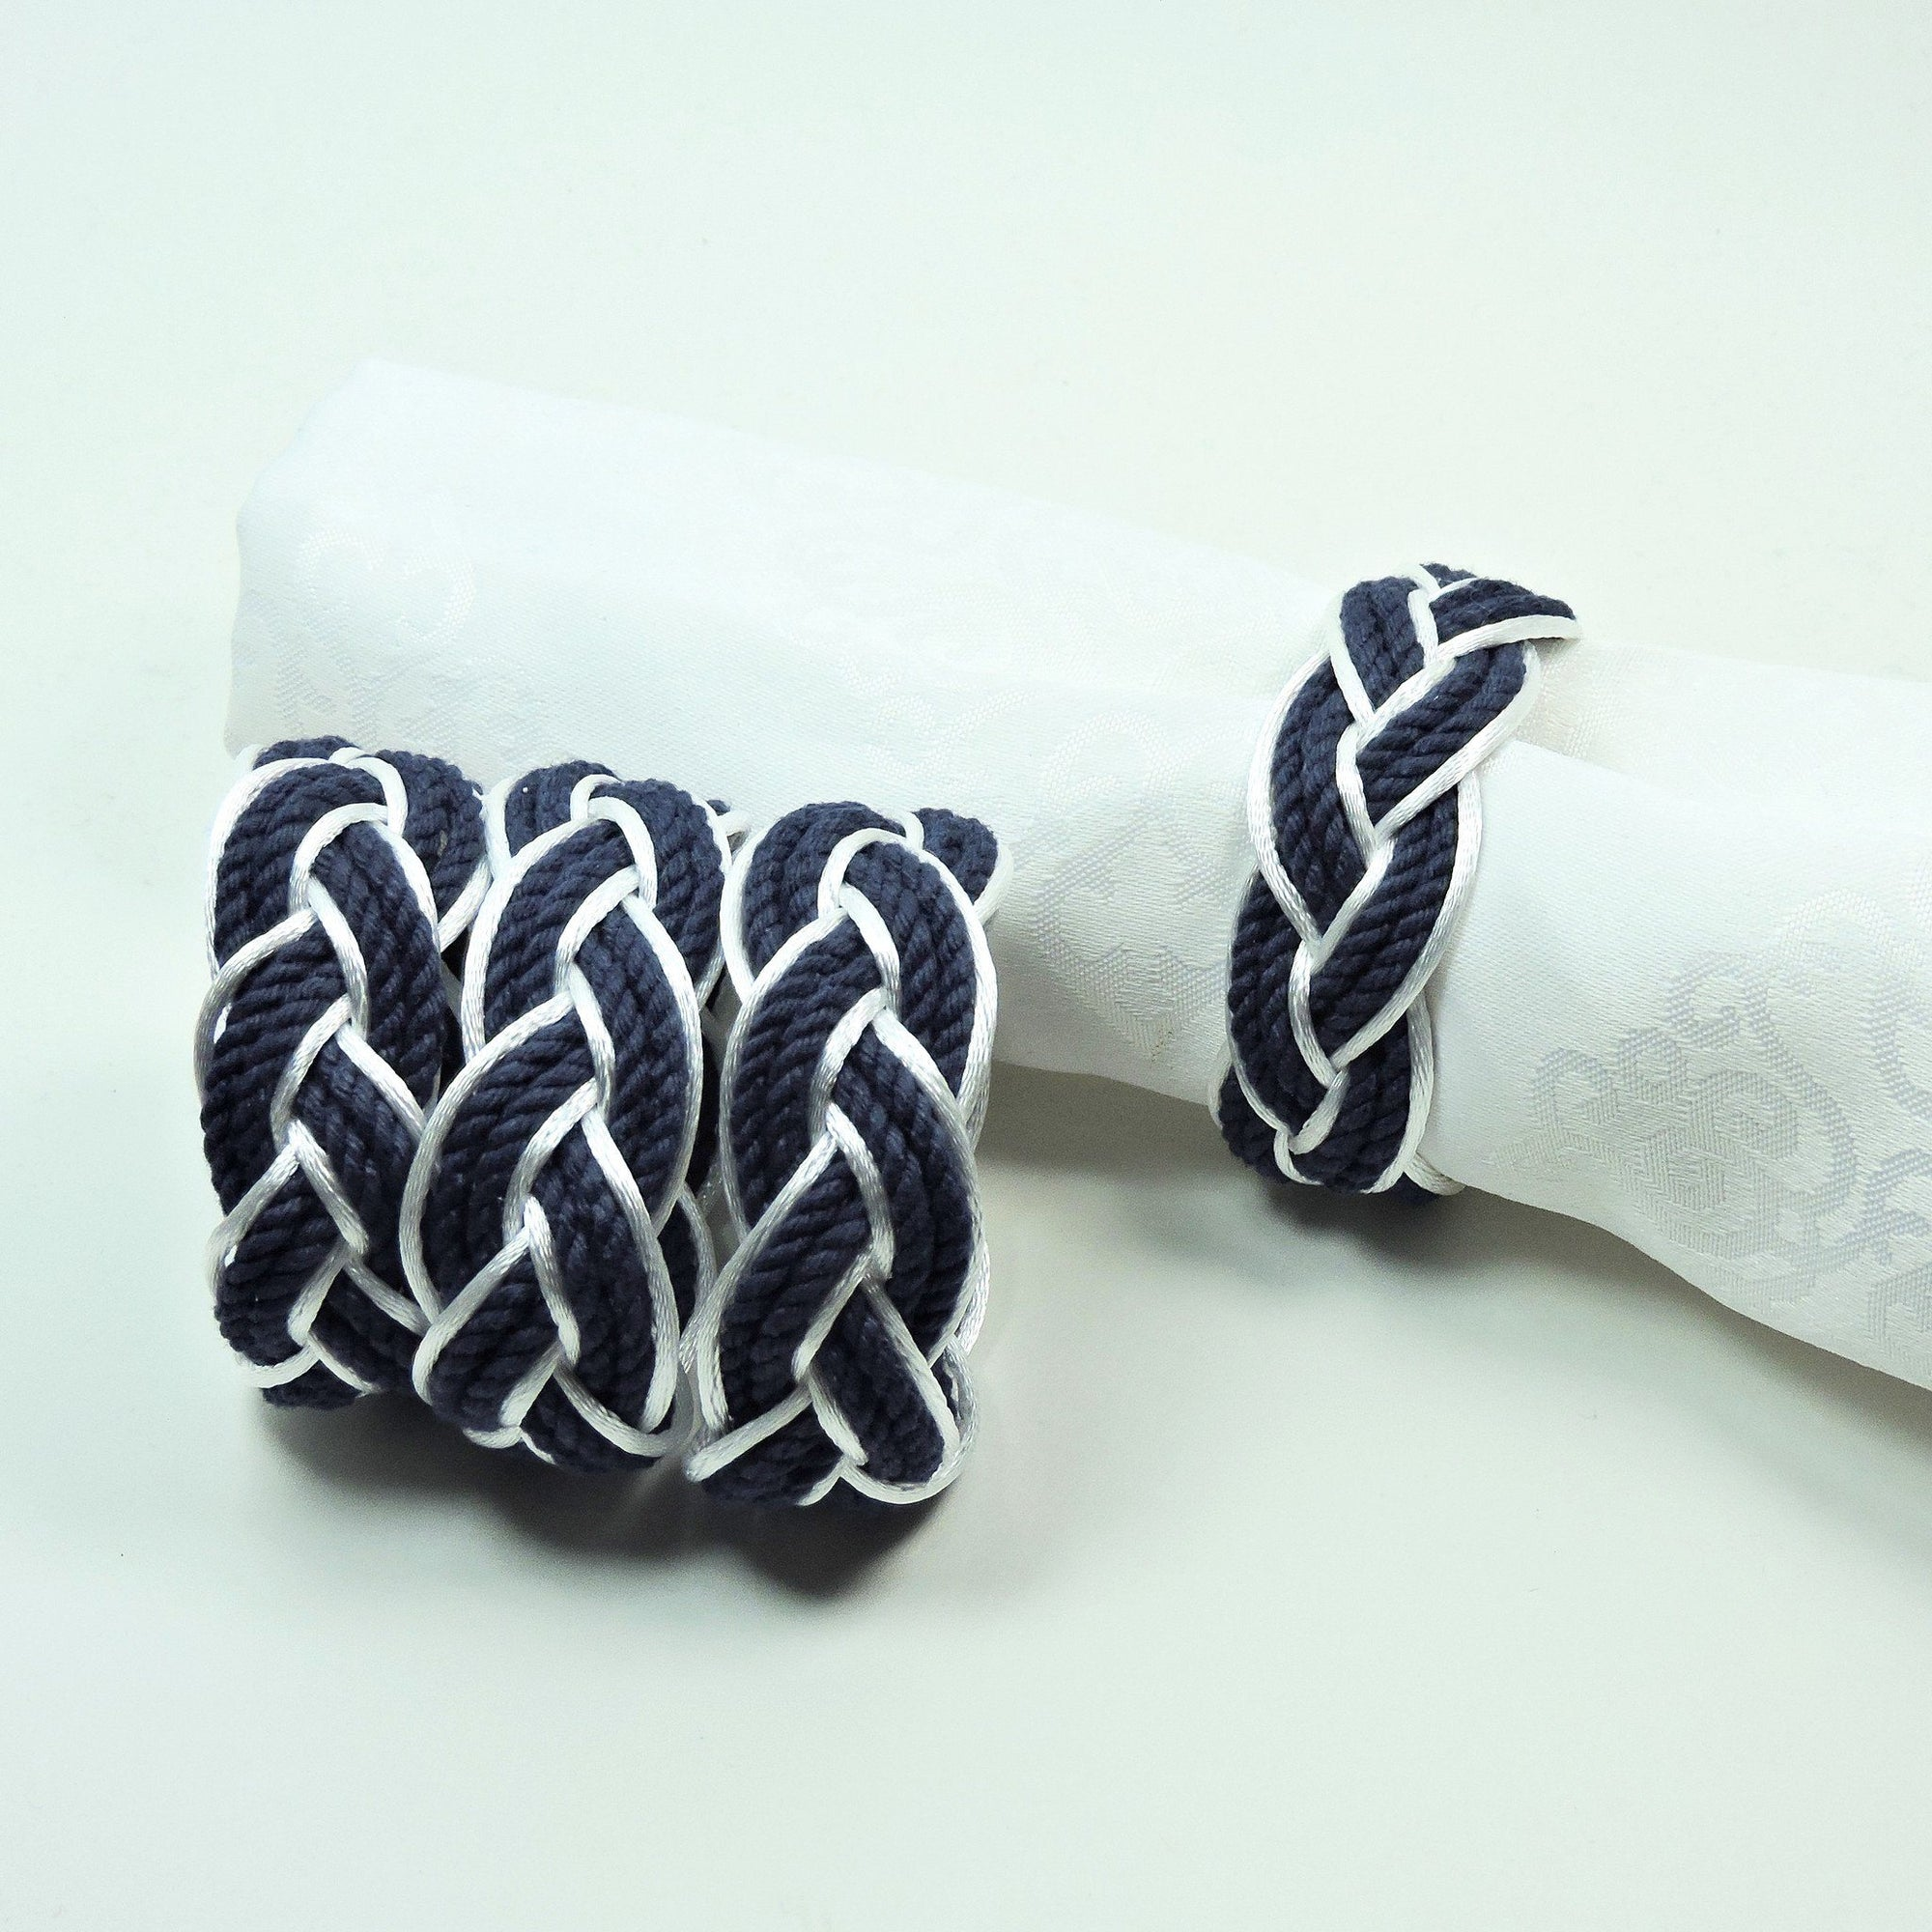 Nautical Sailor Knot Napkin Rings, Navy Outlined in White Satin, Set of 4 - Limited Edition! Handmade sailor knot American Made in Mystic, CT $ 20.00